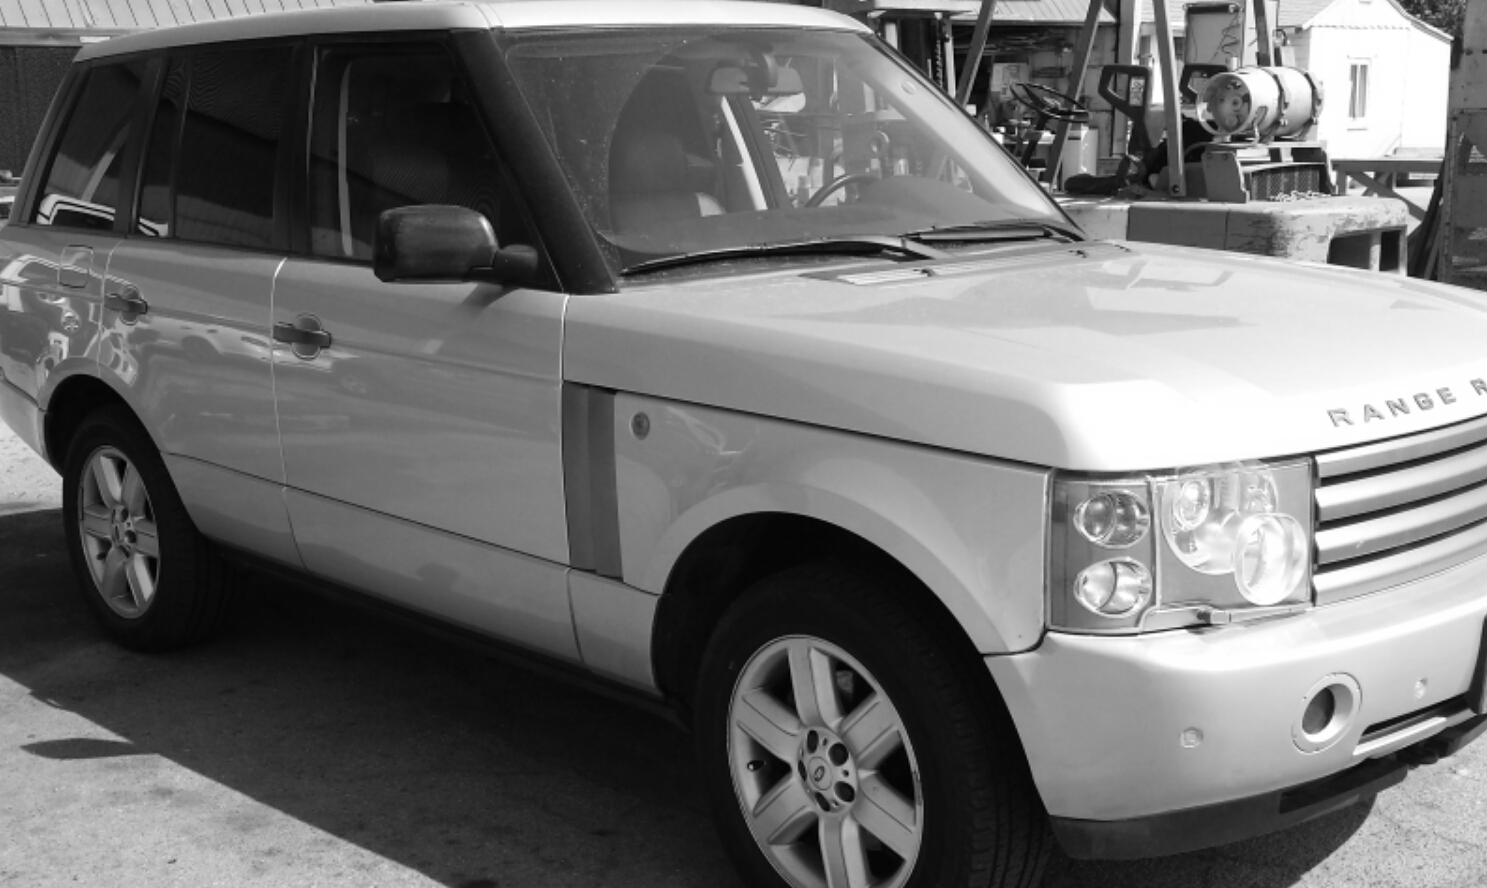 Range Rover Steering Columns: Key Will Not Turn in Ignition. Range Rover  2003, 2004, 2005, 2006 and 2007